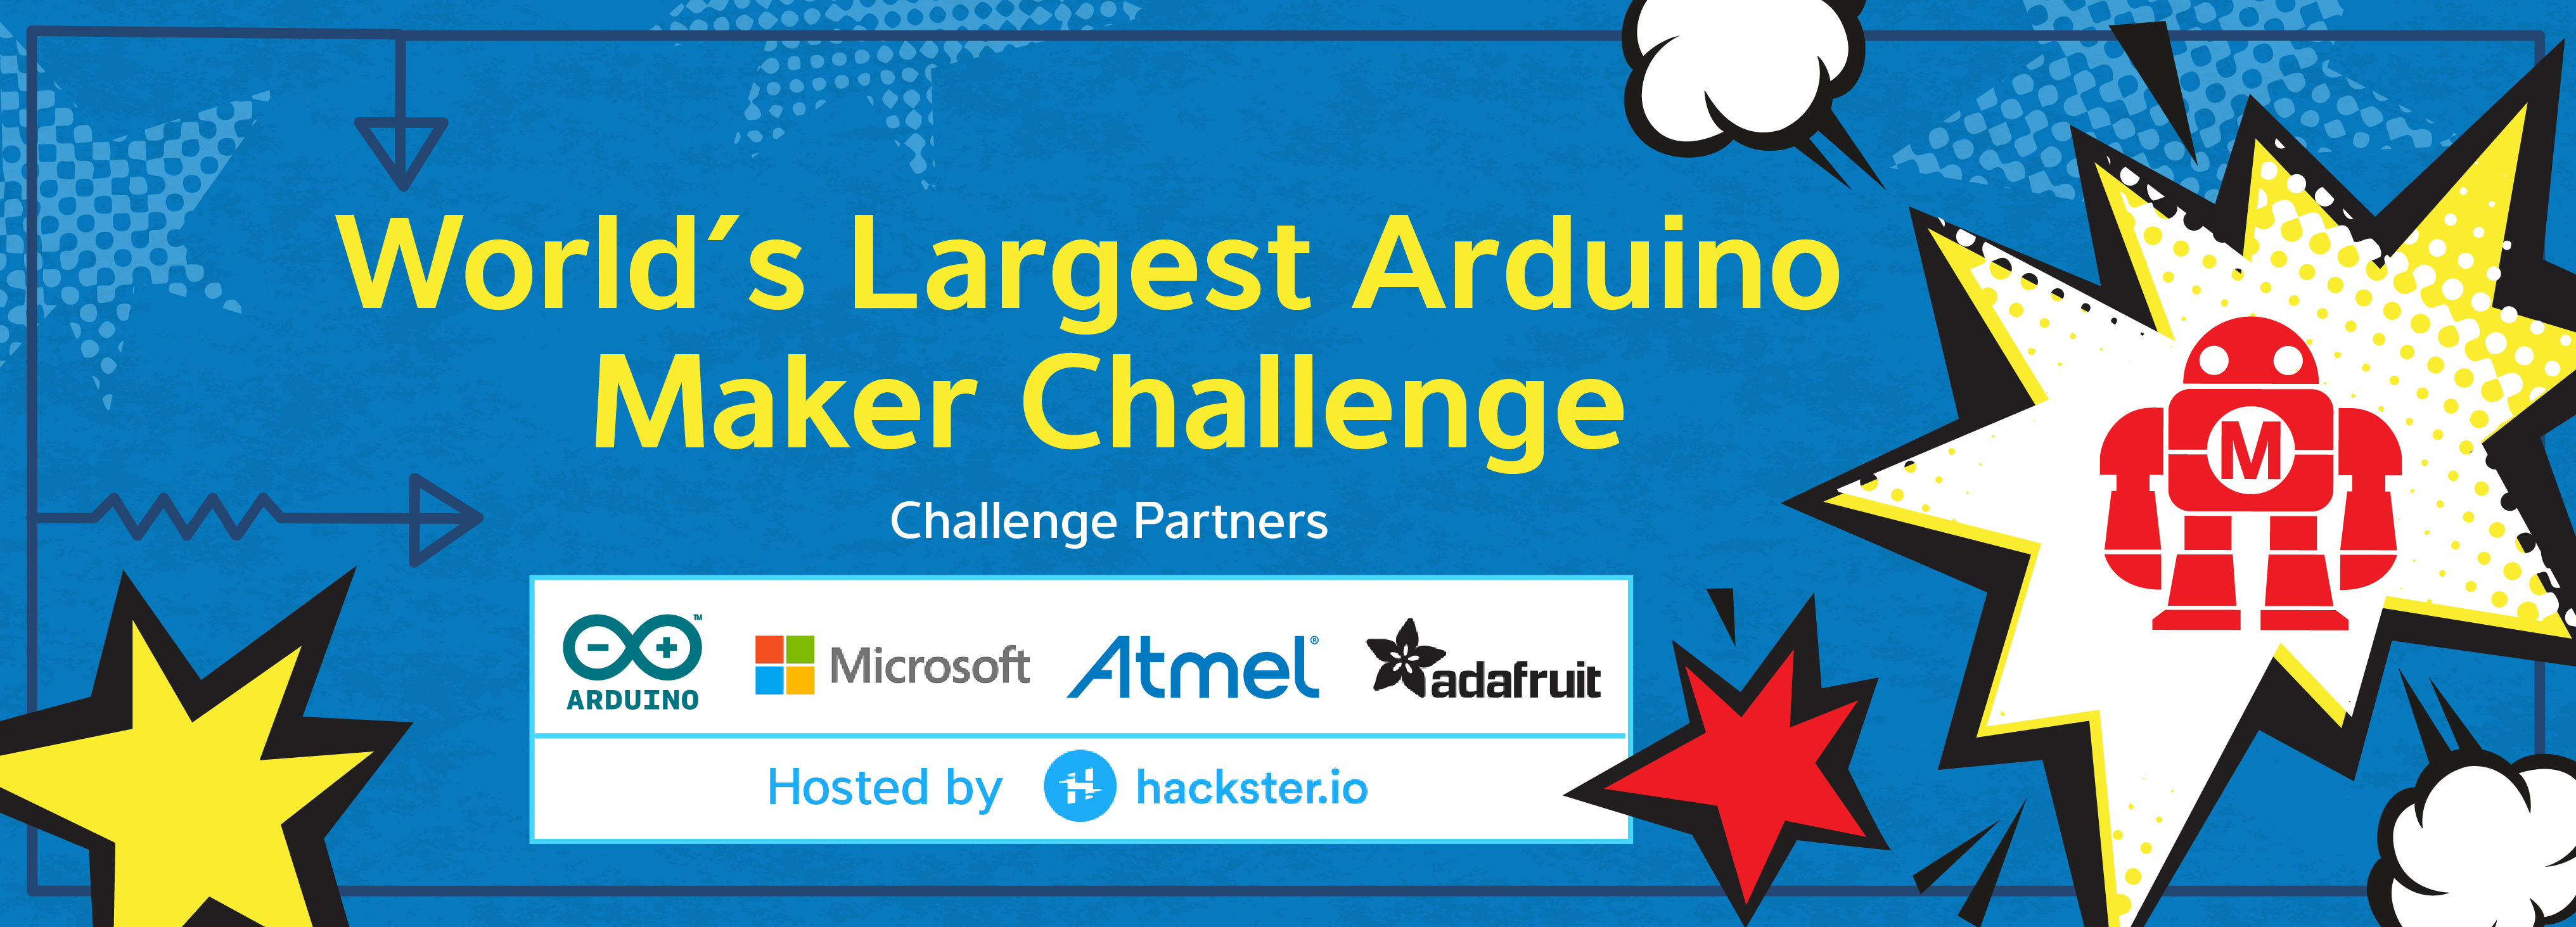 World's Largest Arduino Maker Challenge